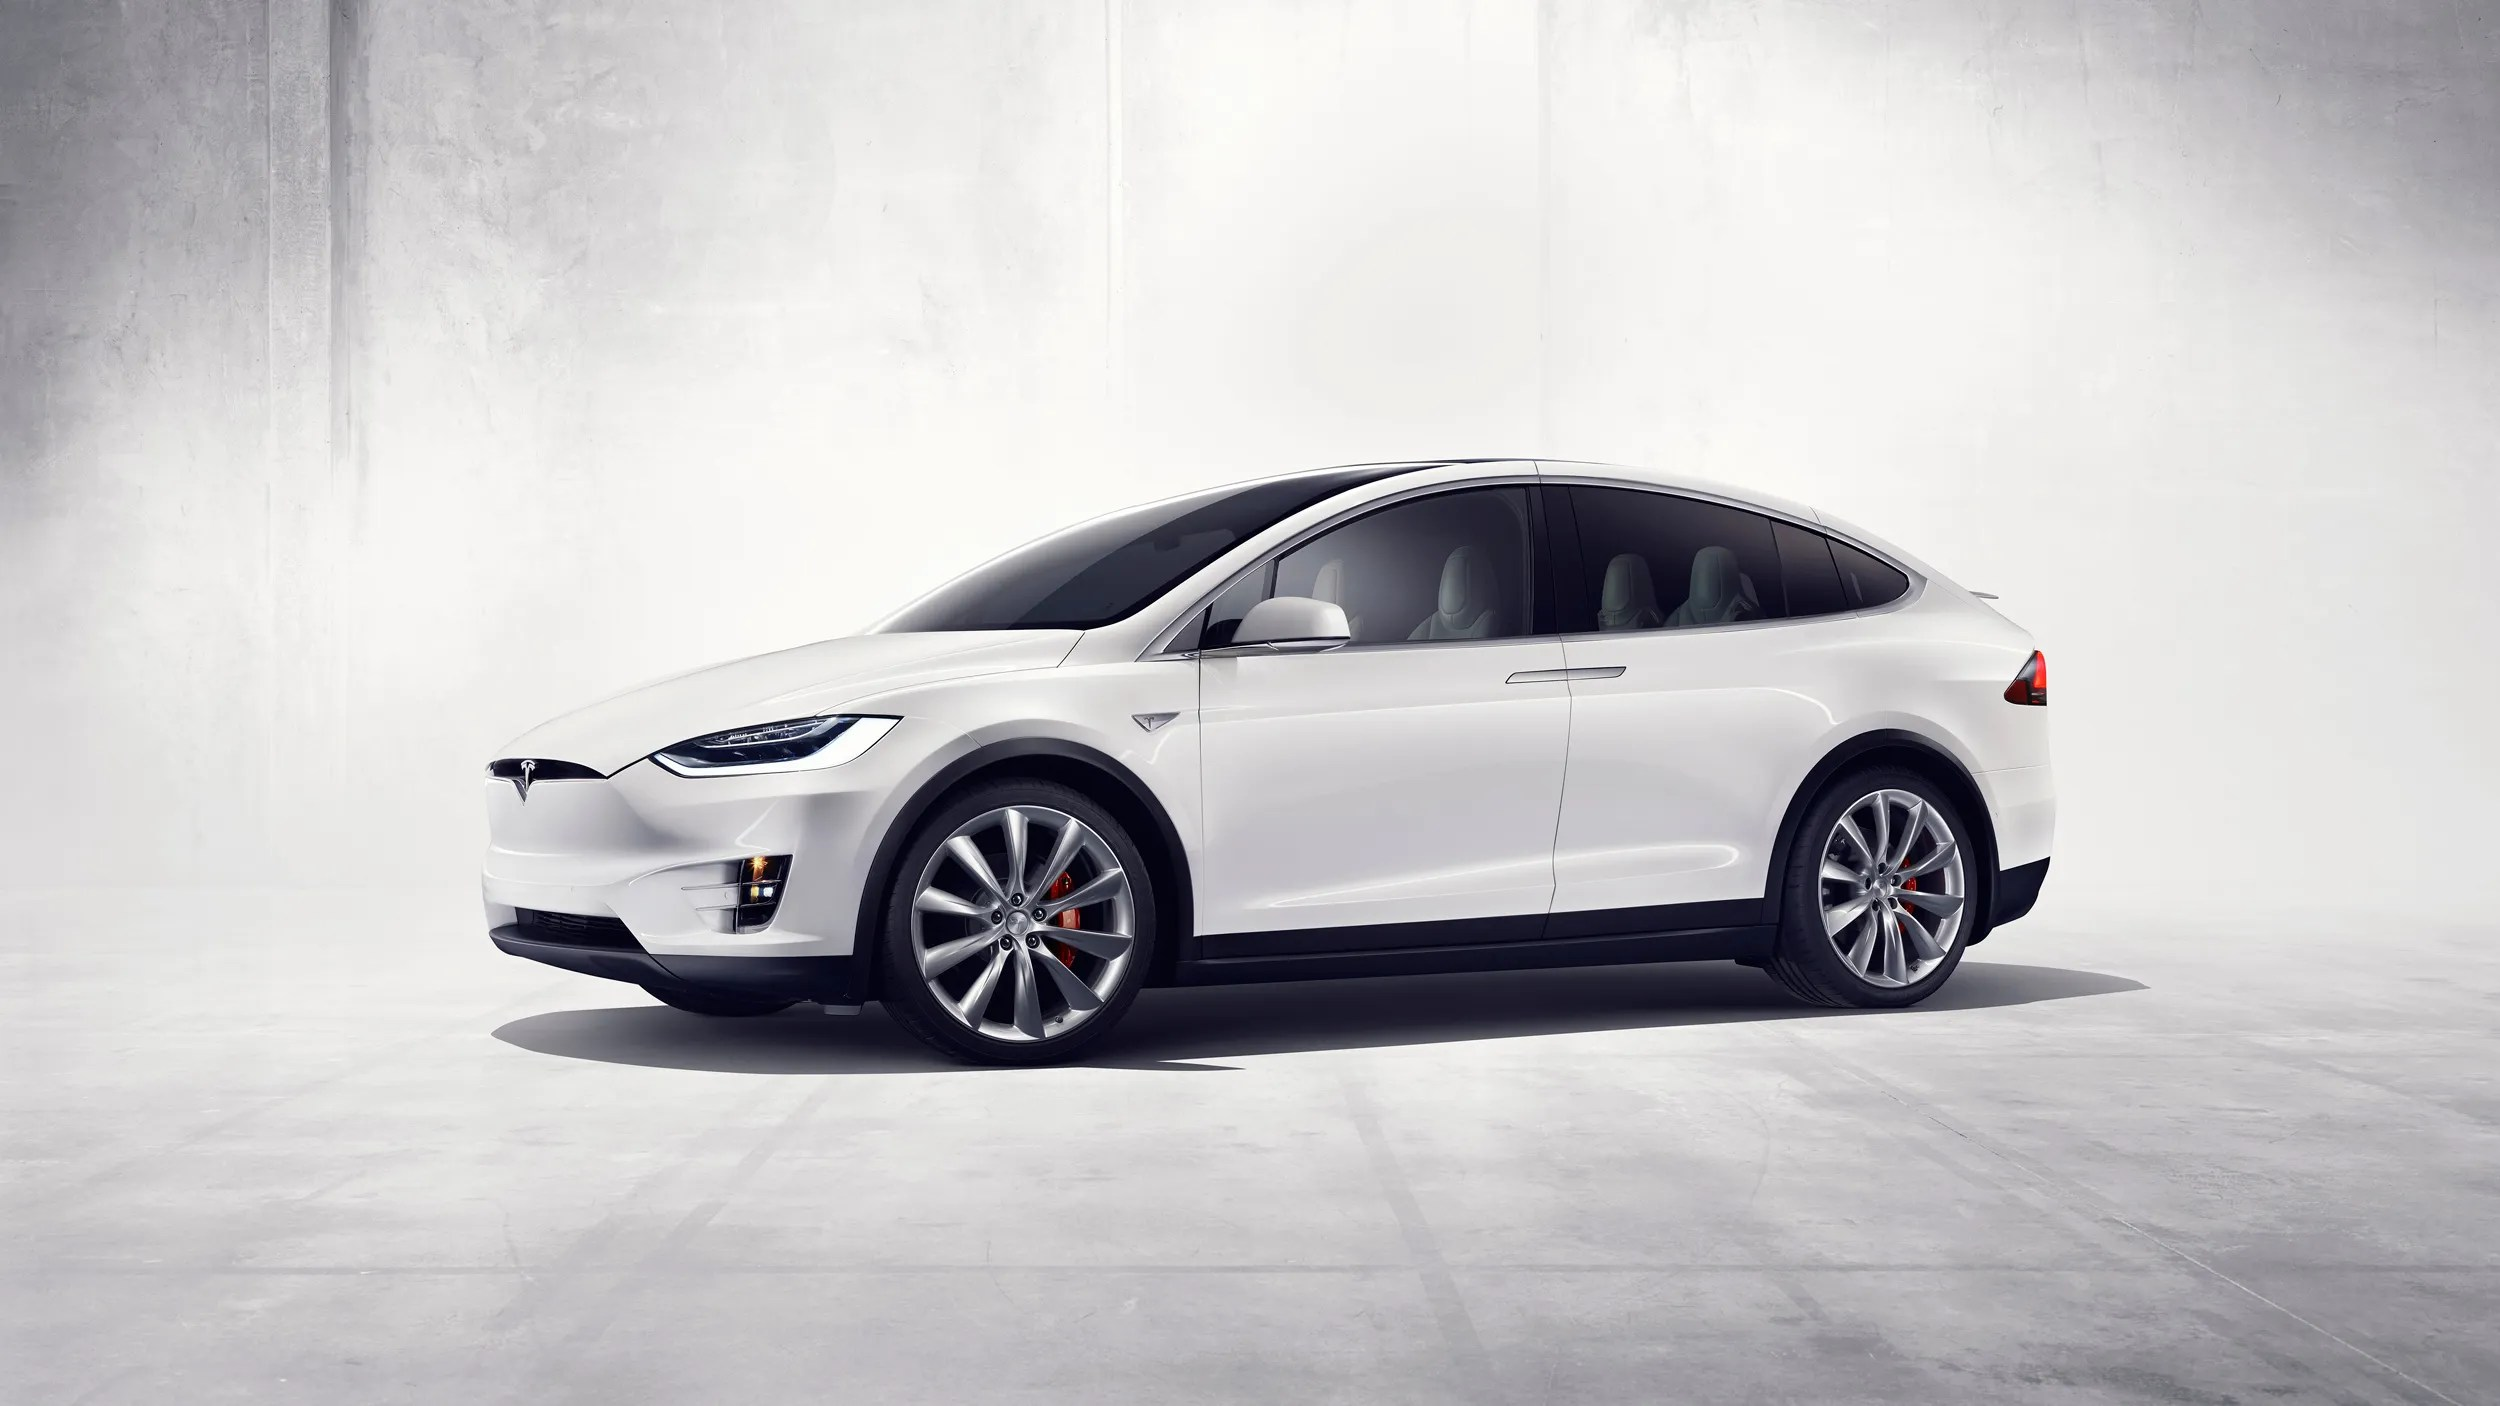 Car Möbel Tesla S Model X Is Here And It S As Awesome As We Hoped Wired